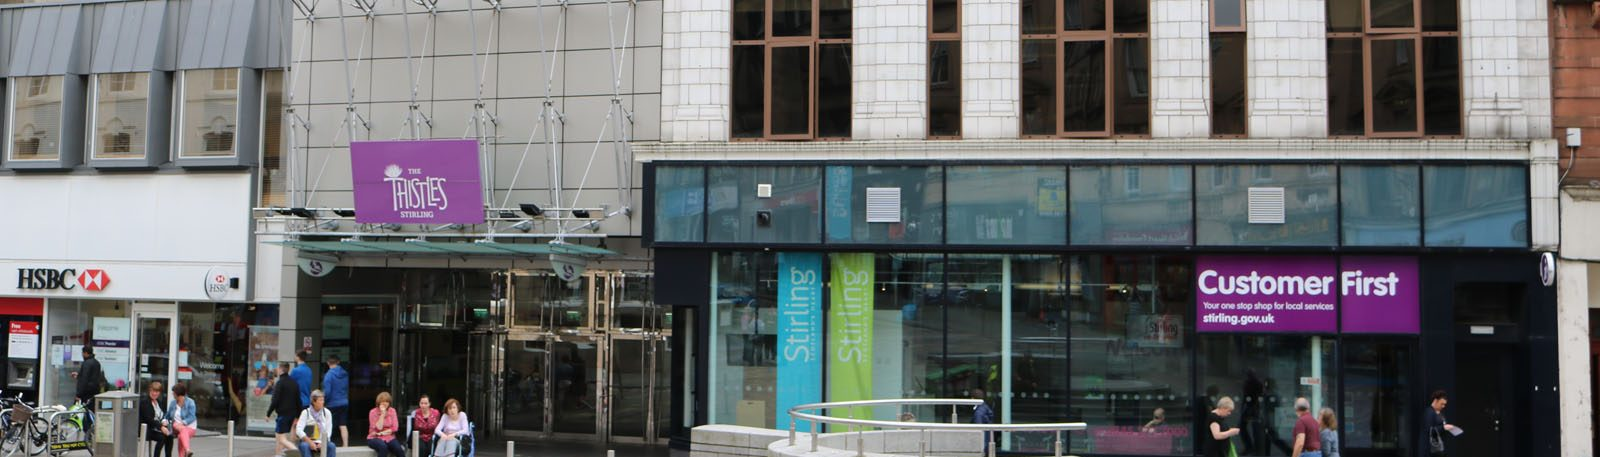 The Thistles Shopping Centre King Street